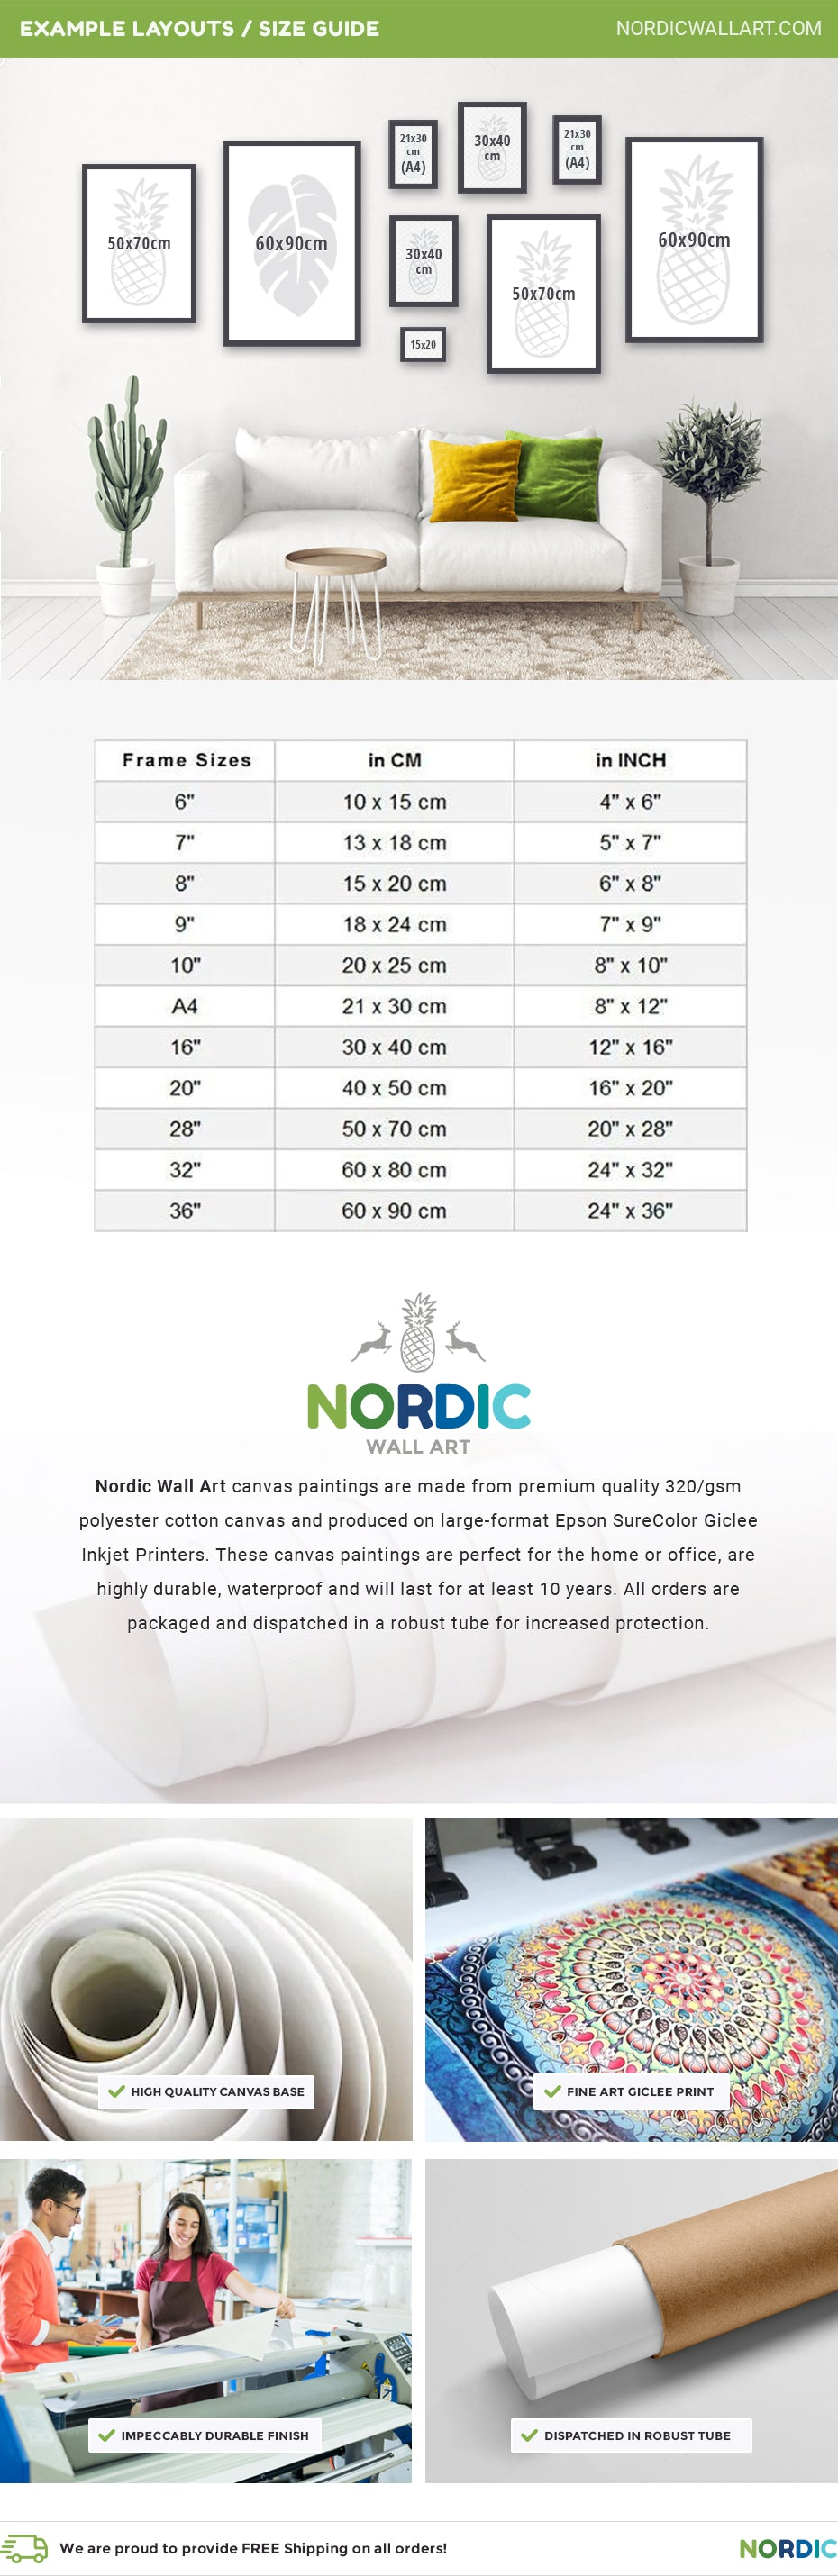 Nordic Wall Art canvas paintings are made from premium quality 320/gsm  polyester cotton canvas and produced on large-format Epson SureColor Giclee Inkjet Printers. These canvas paintings are perfect for the home or office, are highly durable, waterproof and will last for at least 10 years. All orders are packaged and dispatched in a robust tube for increased protection.